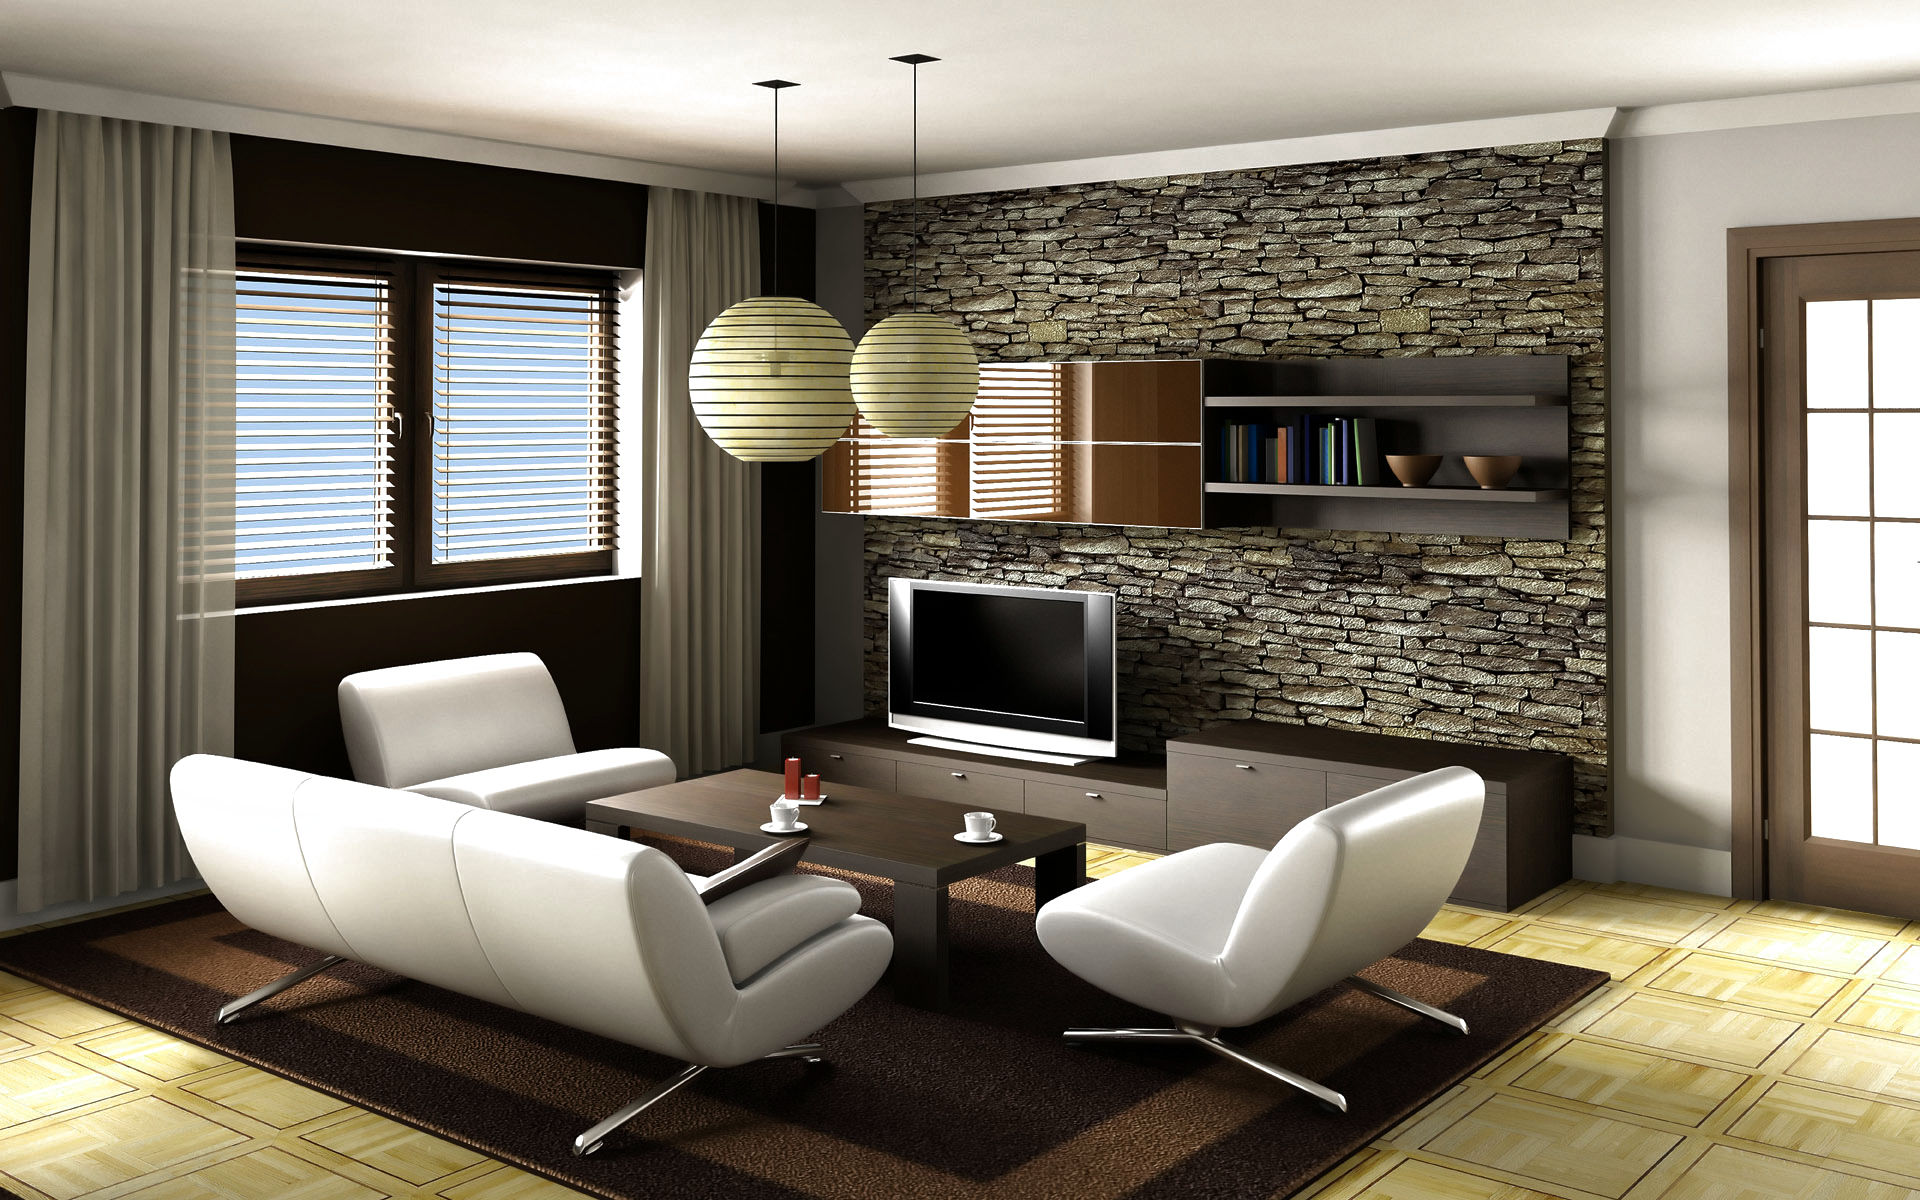 16 Modern Living Room Furniture Ideas & Design HGNV